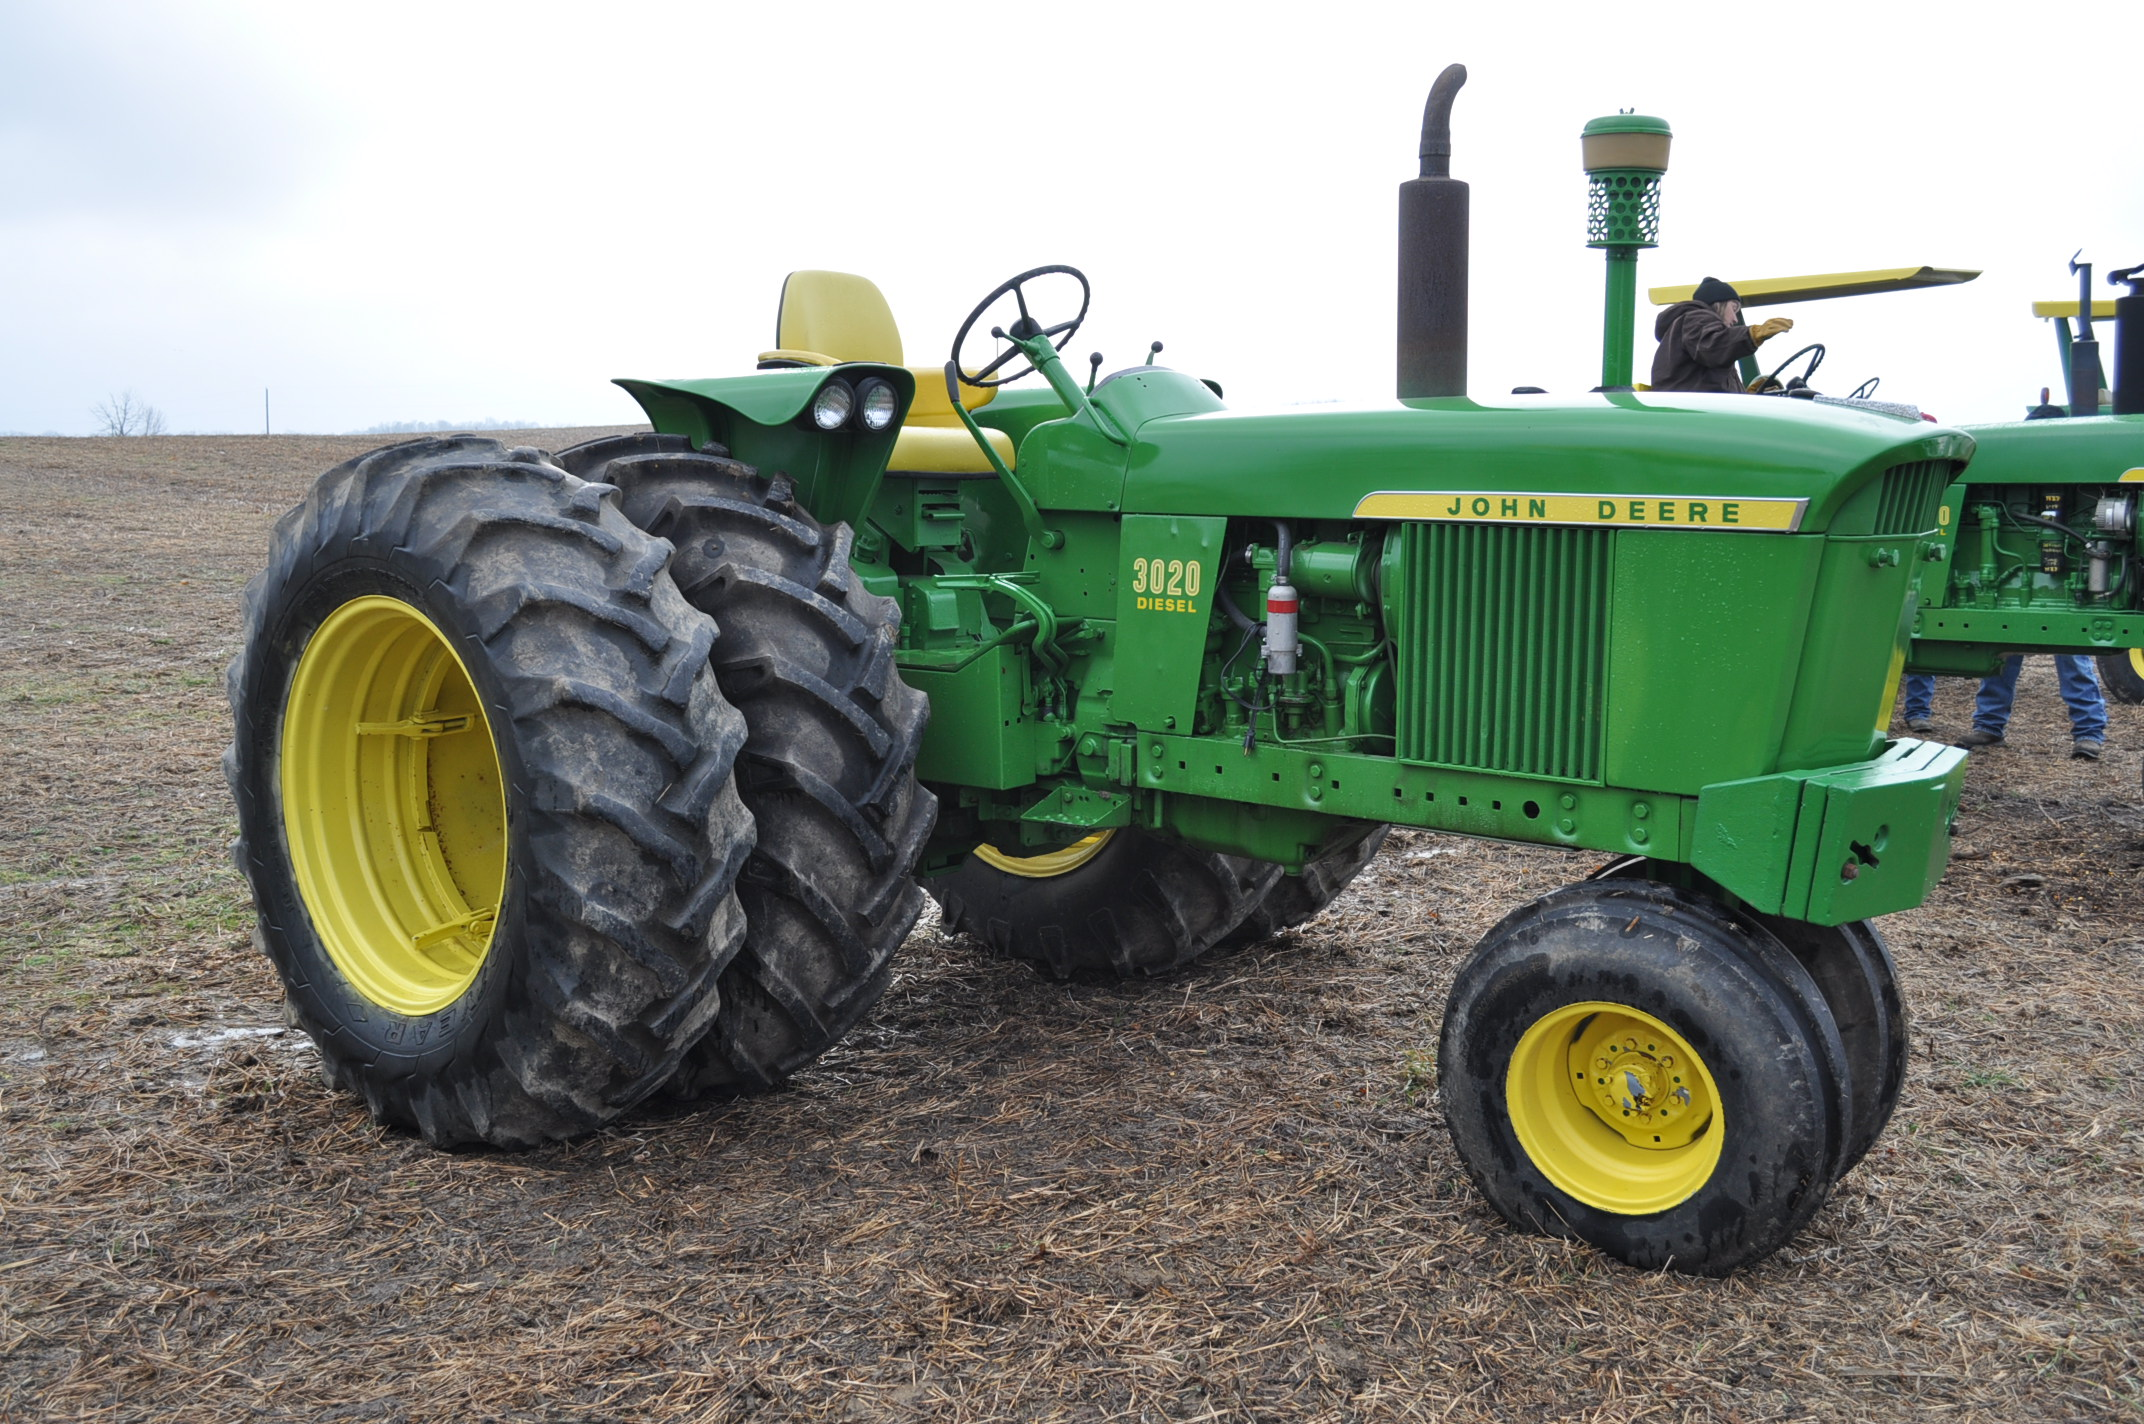 John Deere 3020 tractor, diesel, 18.4-34 rear, clamp on duals, 11L-15 narrow front, Syncro, 2 - Image 4 of 15